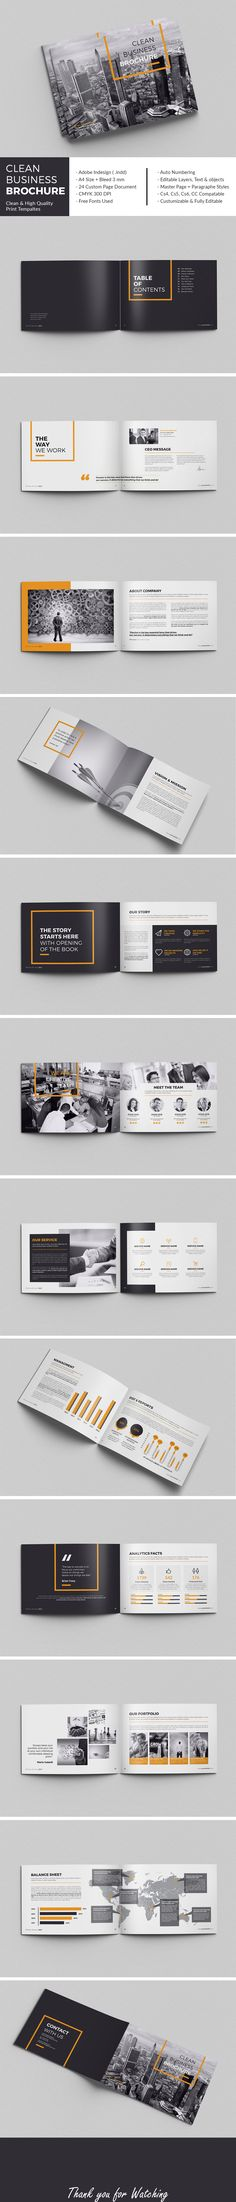 I like the usage of black and white and one bold color. The layout is very simple. Less is more approach.